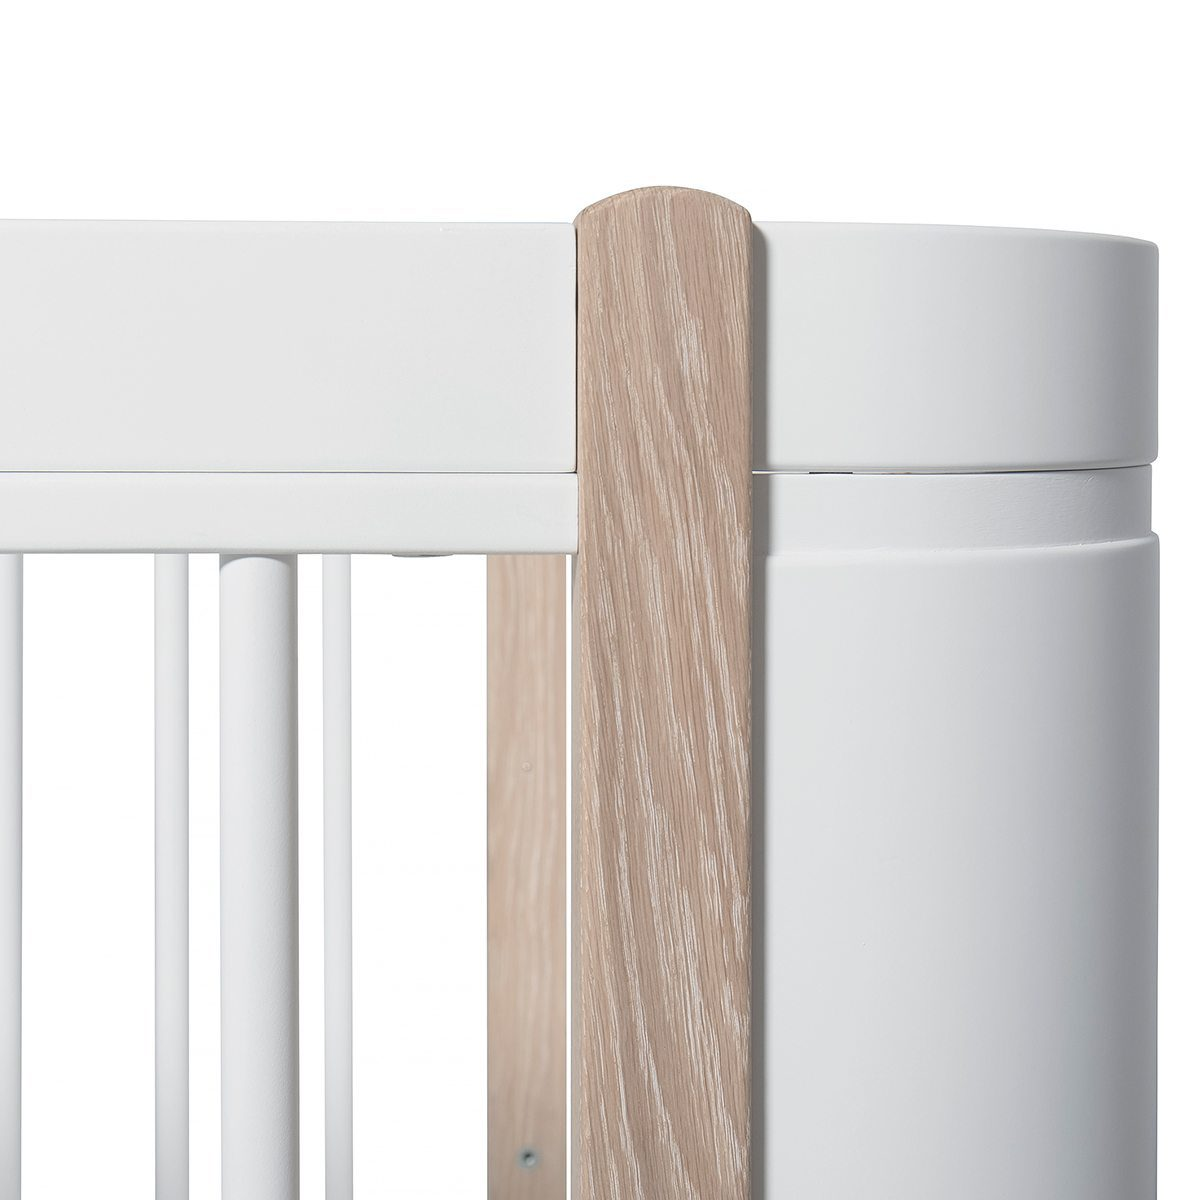 Oliver Furniture Ledikant Wood Mini+ white oak detail